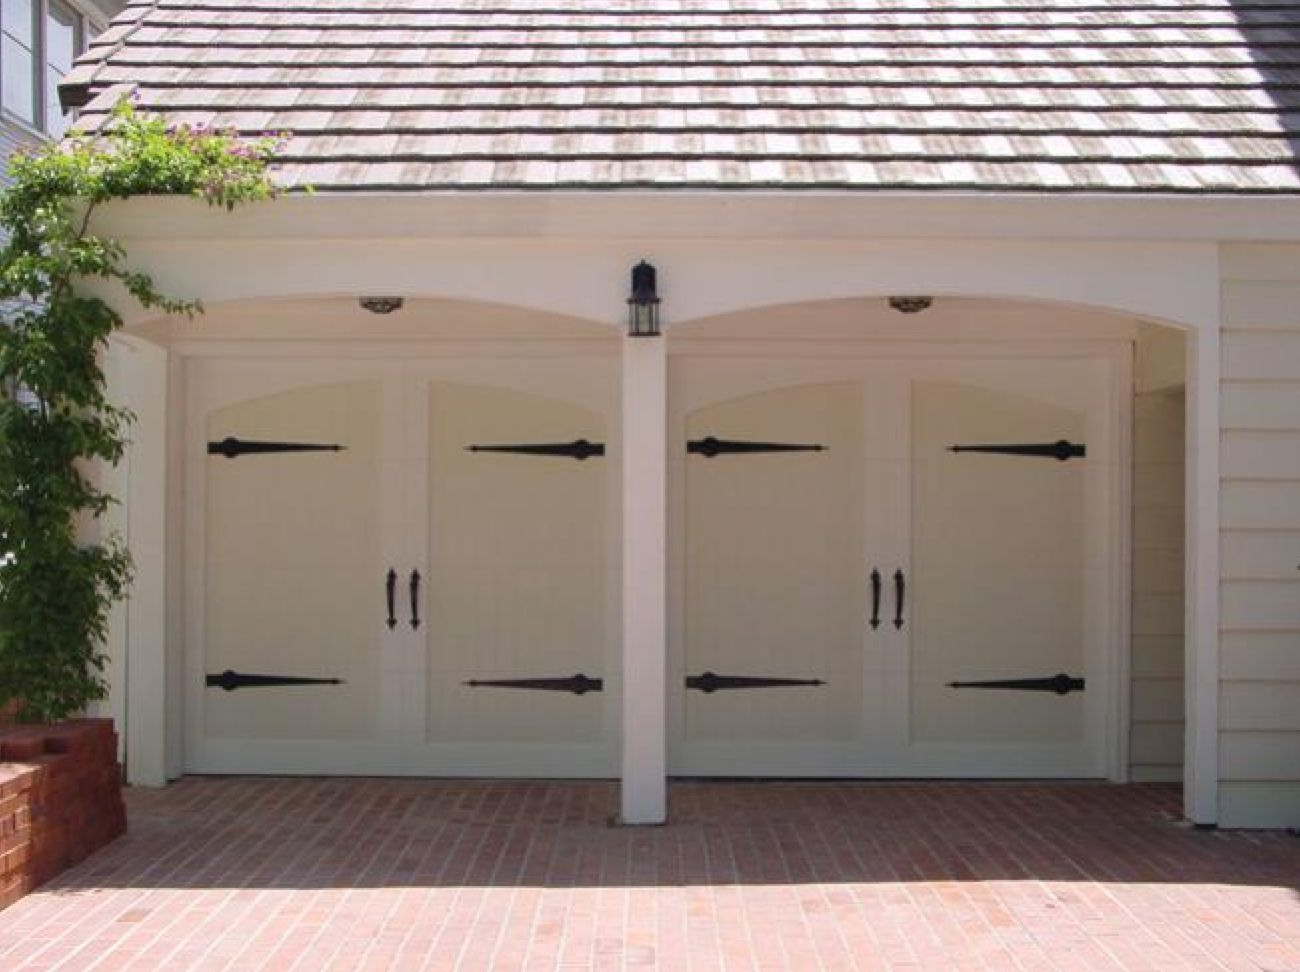 great garage door ideas - Knowing Garage Door Styles to Have the Best e for You